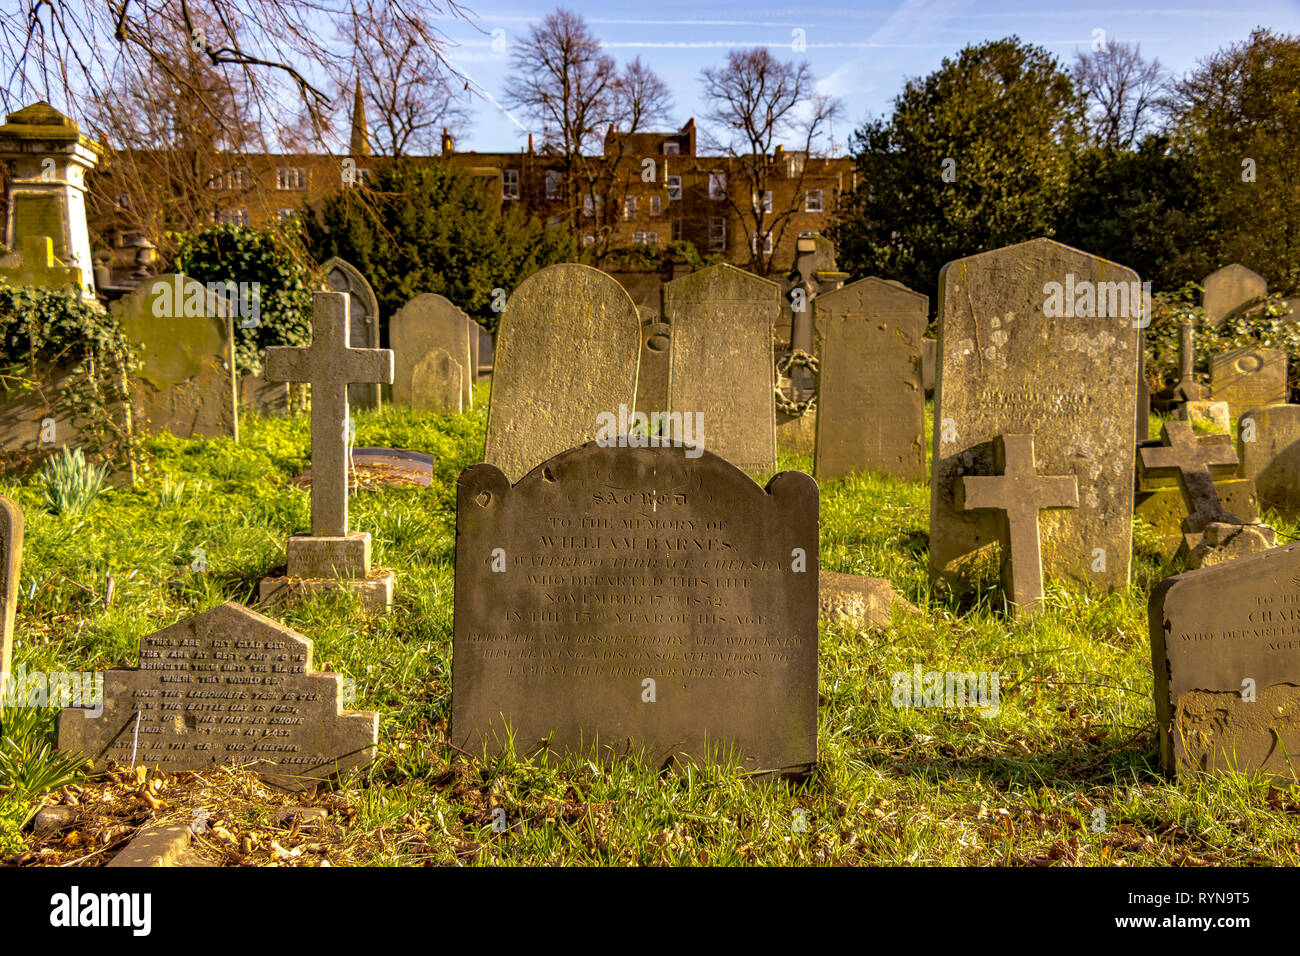 Brompton Cemetery is a London cemetery in the Royal Borough of Kensington and Chelsea, managed by The Royal Parks Stock Photo